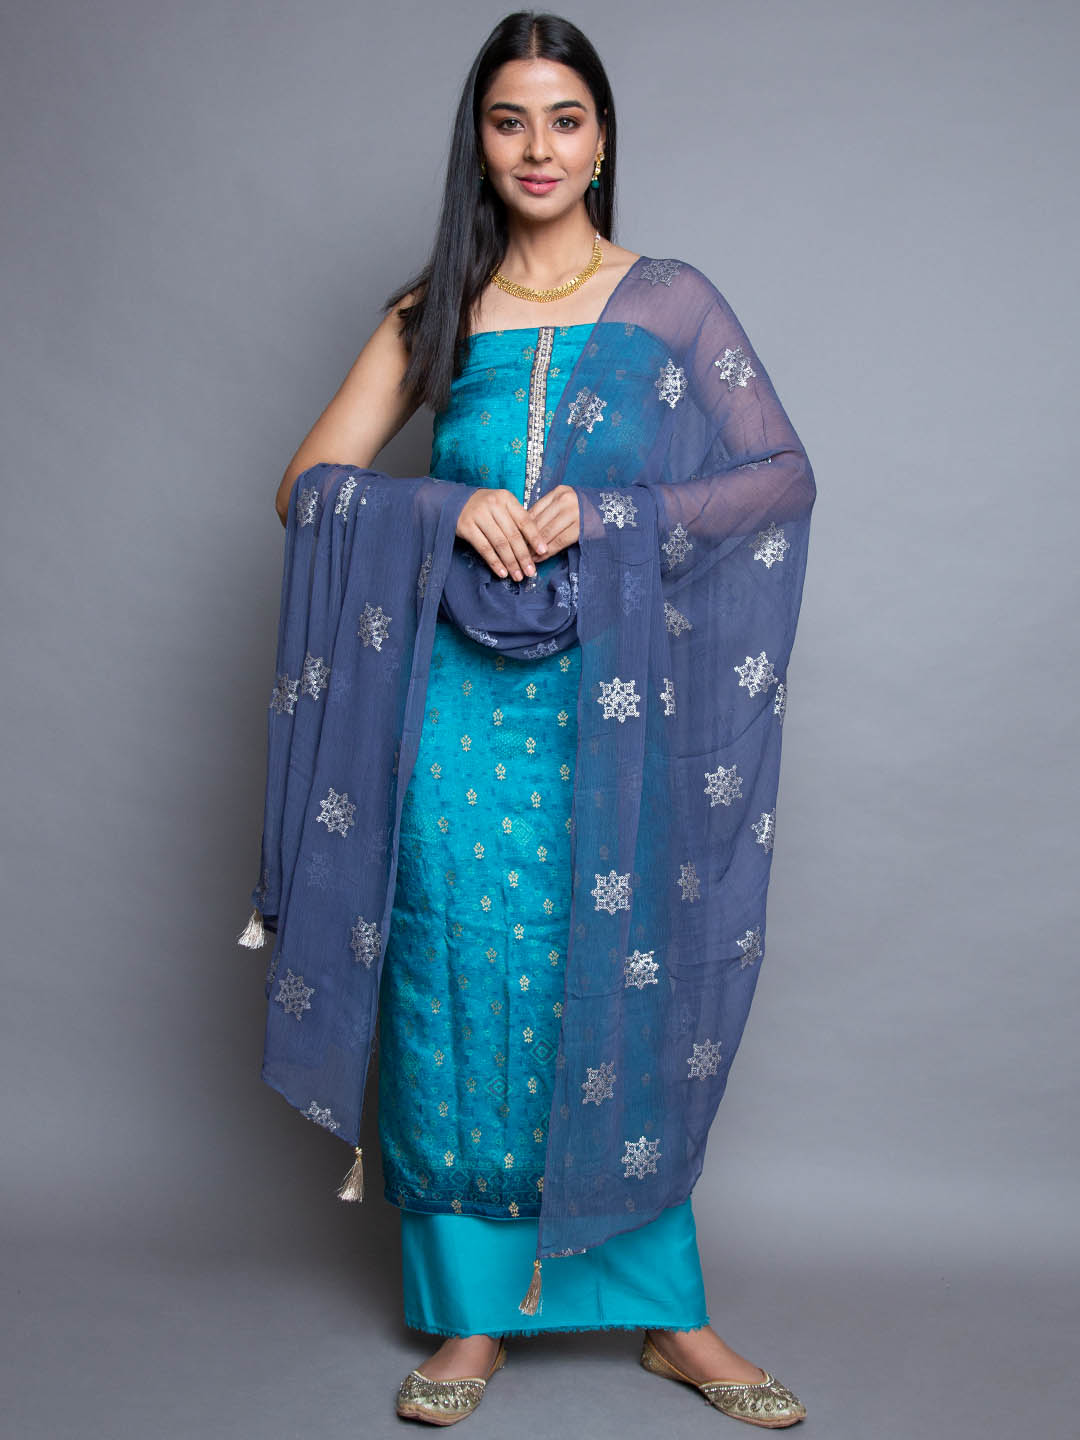 TURQ EMBROIDERY SUIT